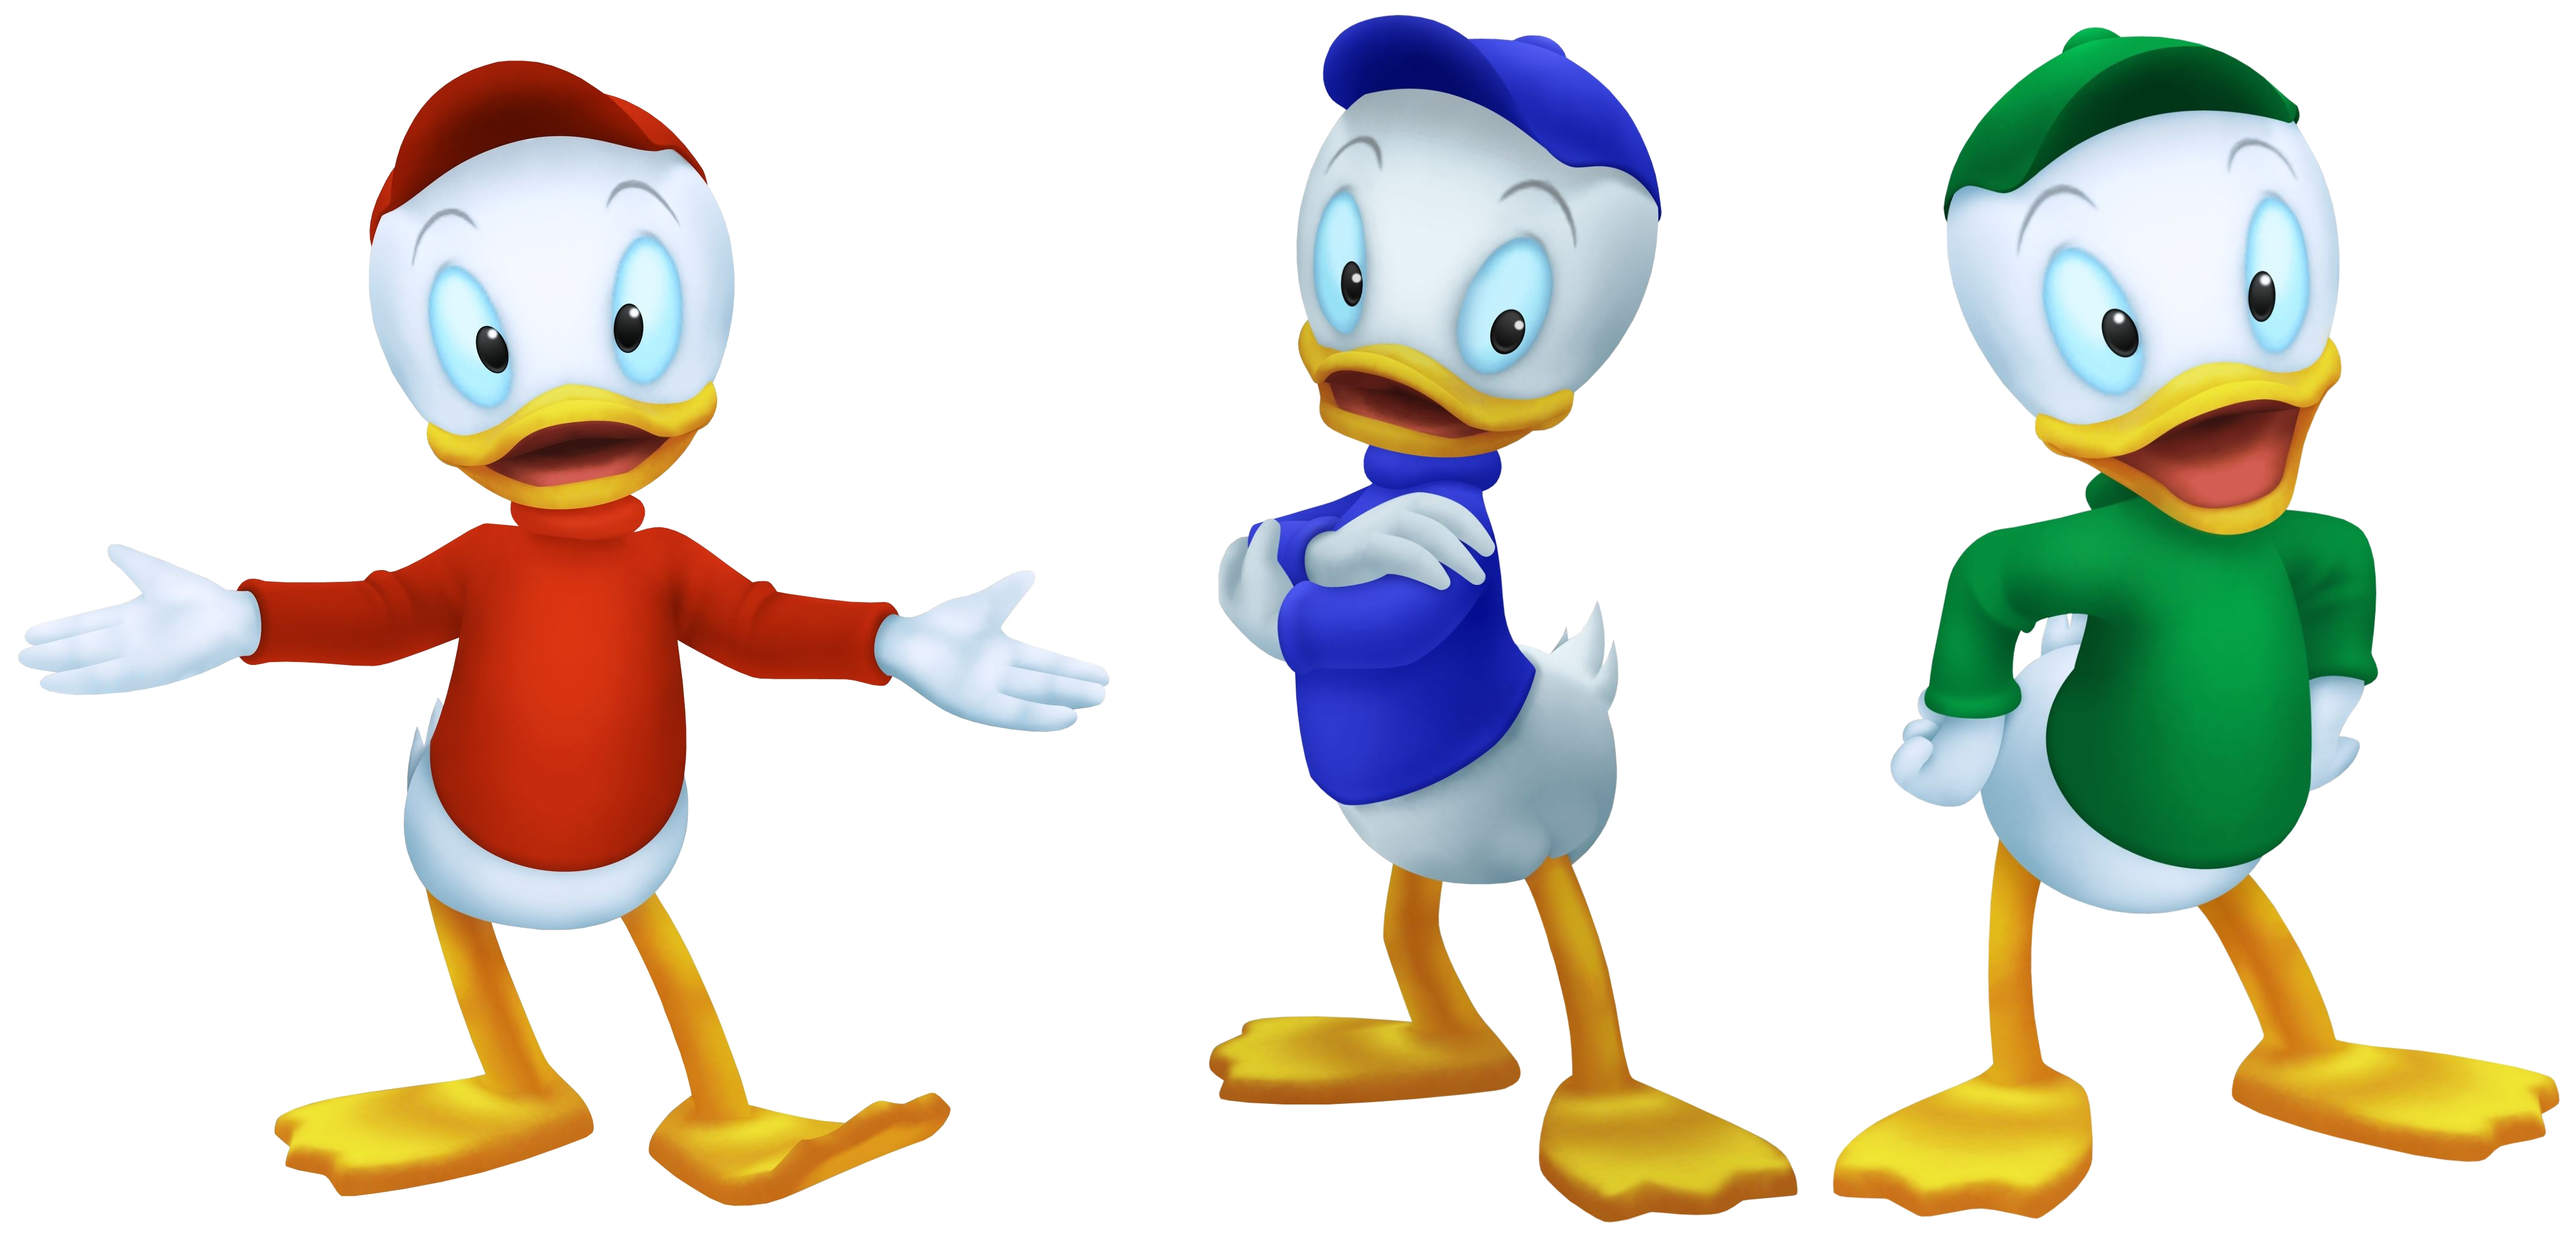 Huey dewey and louie. Duckling clipart three